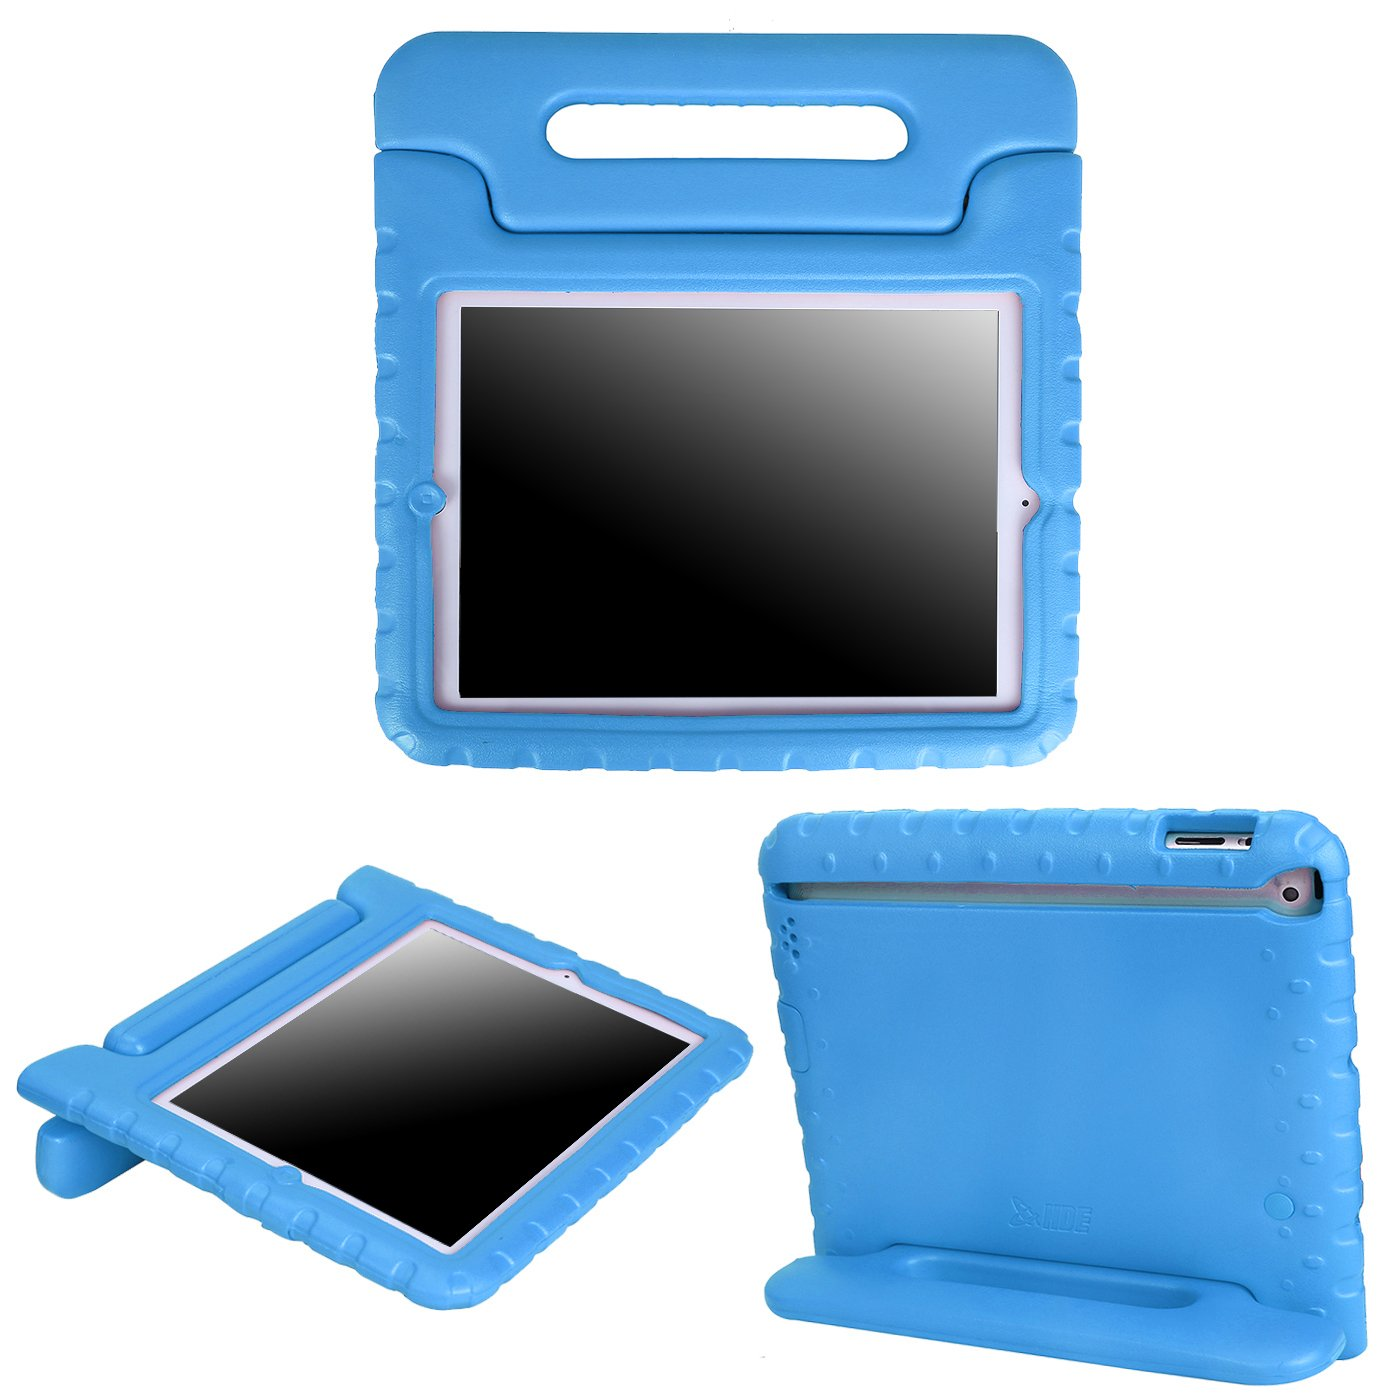 HDE Case for iPad 2 3 4 - Kids Shock Proof Heavy Duty Impact Resistant Protective Cover Handle Stand for Apple iPad 2nd 3rd 4th Generation Tablet (Blue)